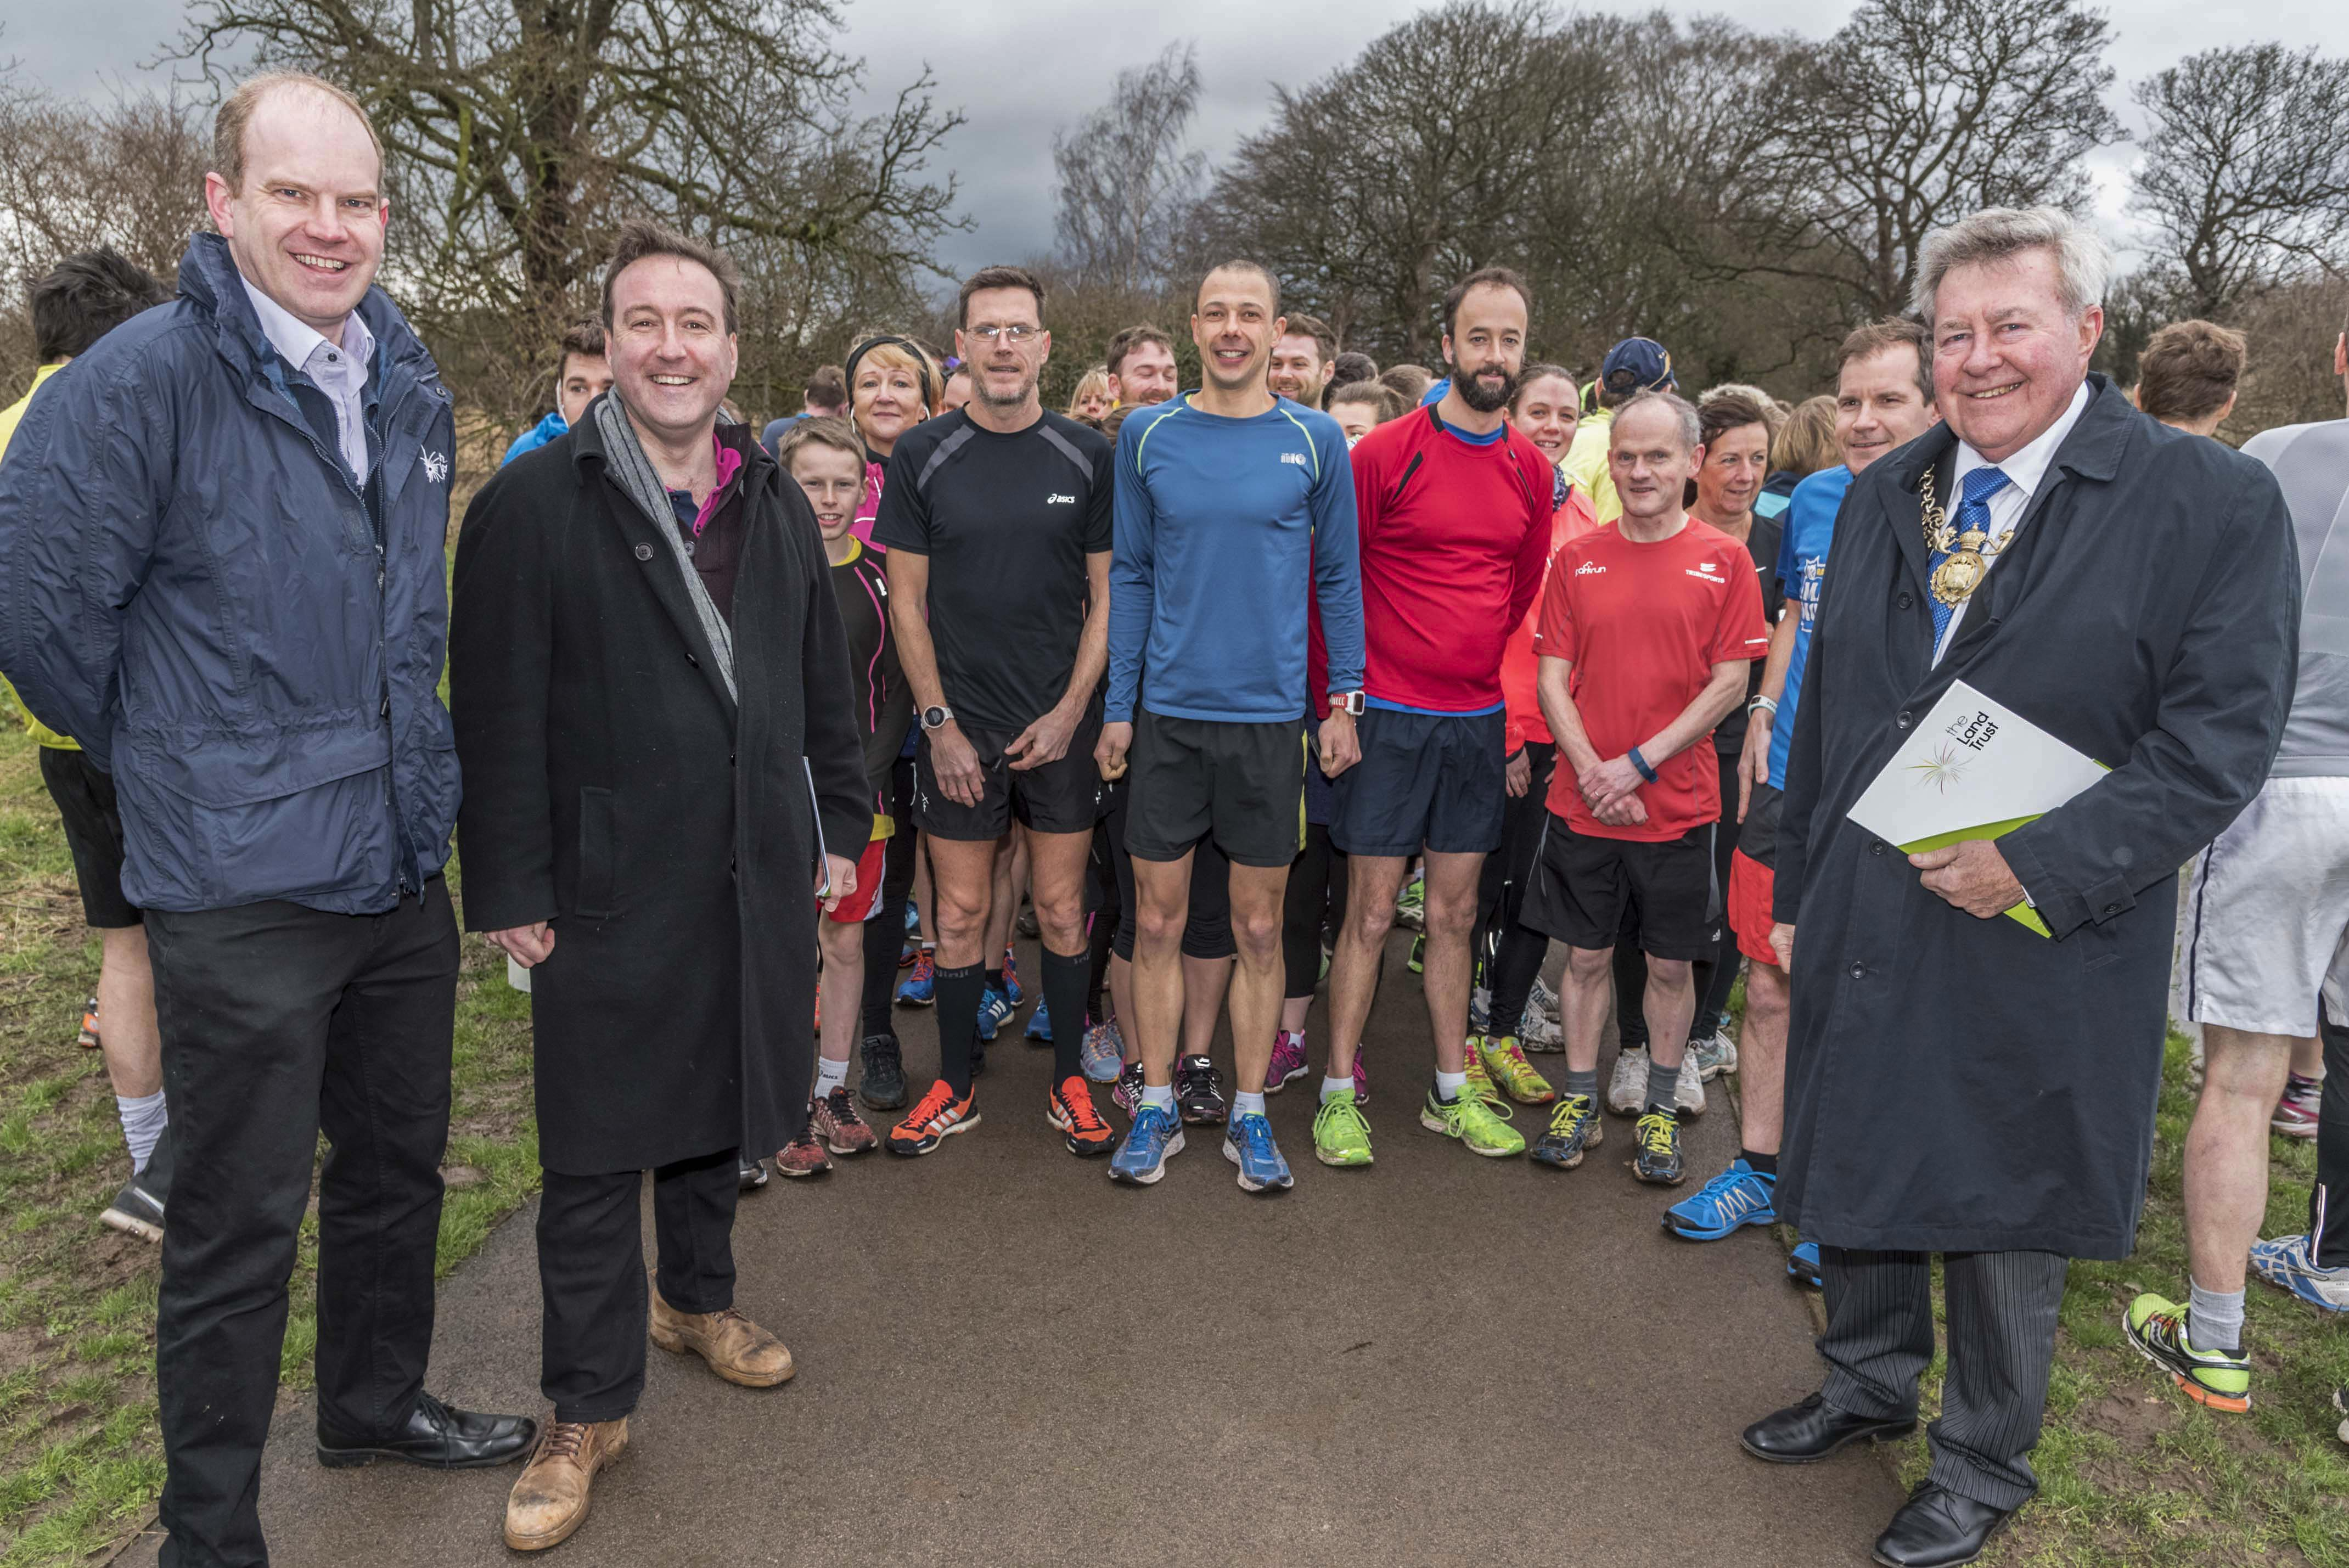 Alan Carter, Chris Matheson MP, parkrunners, Cllr Hogg at Countess of Chester Country Park